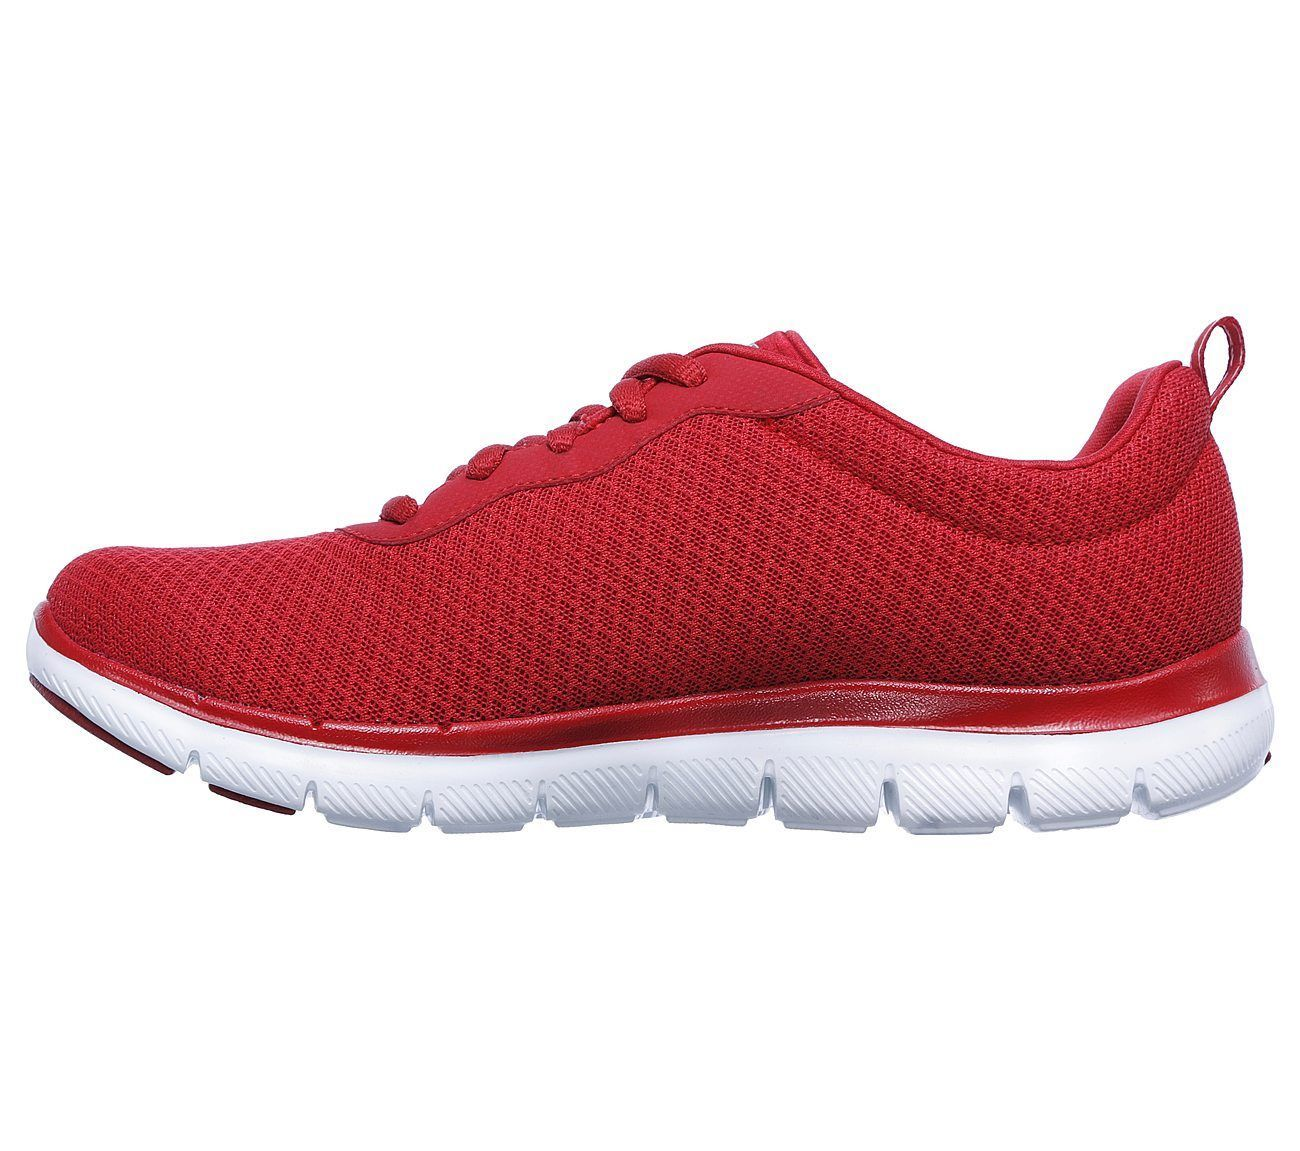 12775 Red Skechers shoes Women Memory Foam Sport Train Walk Comfort Casual Mesh